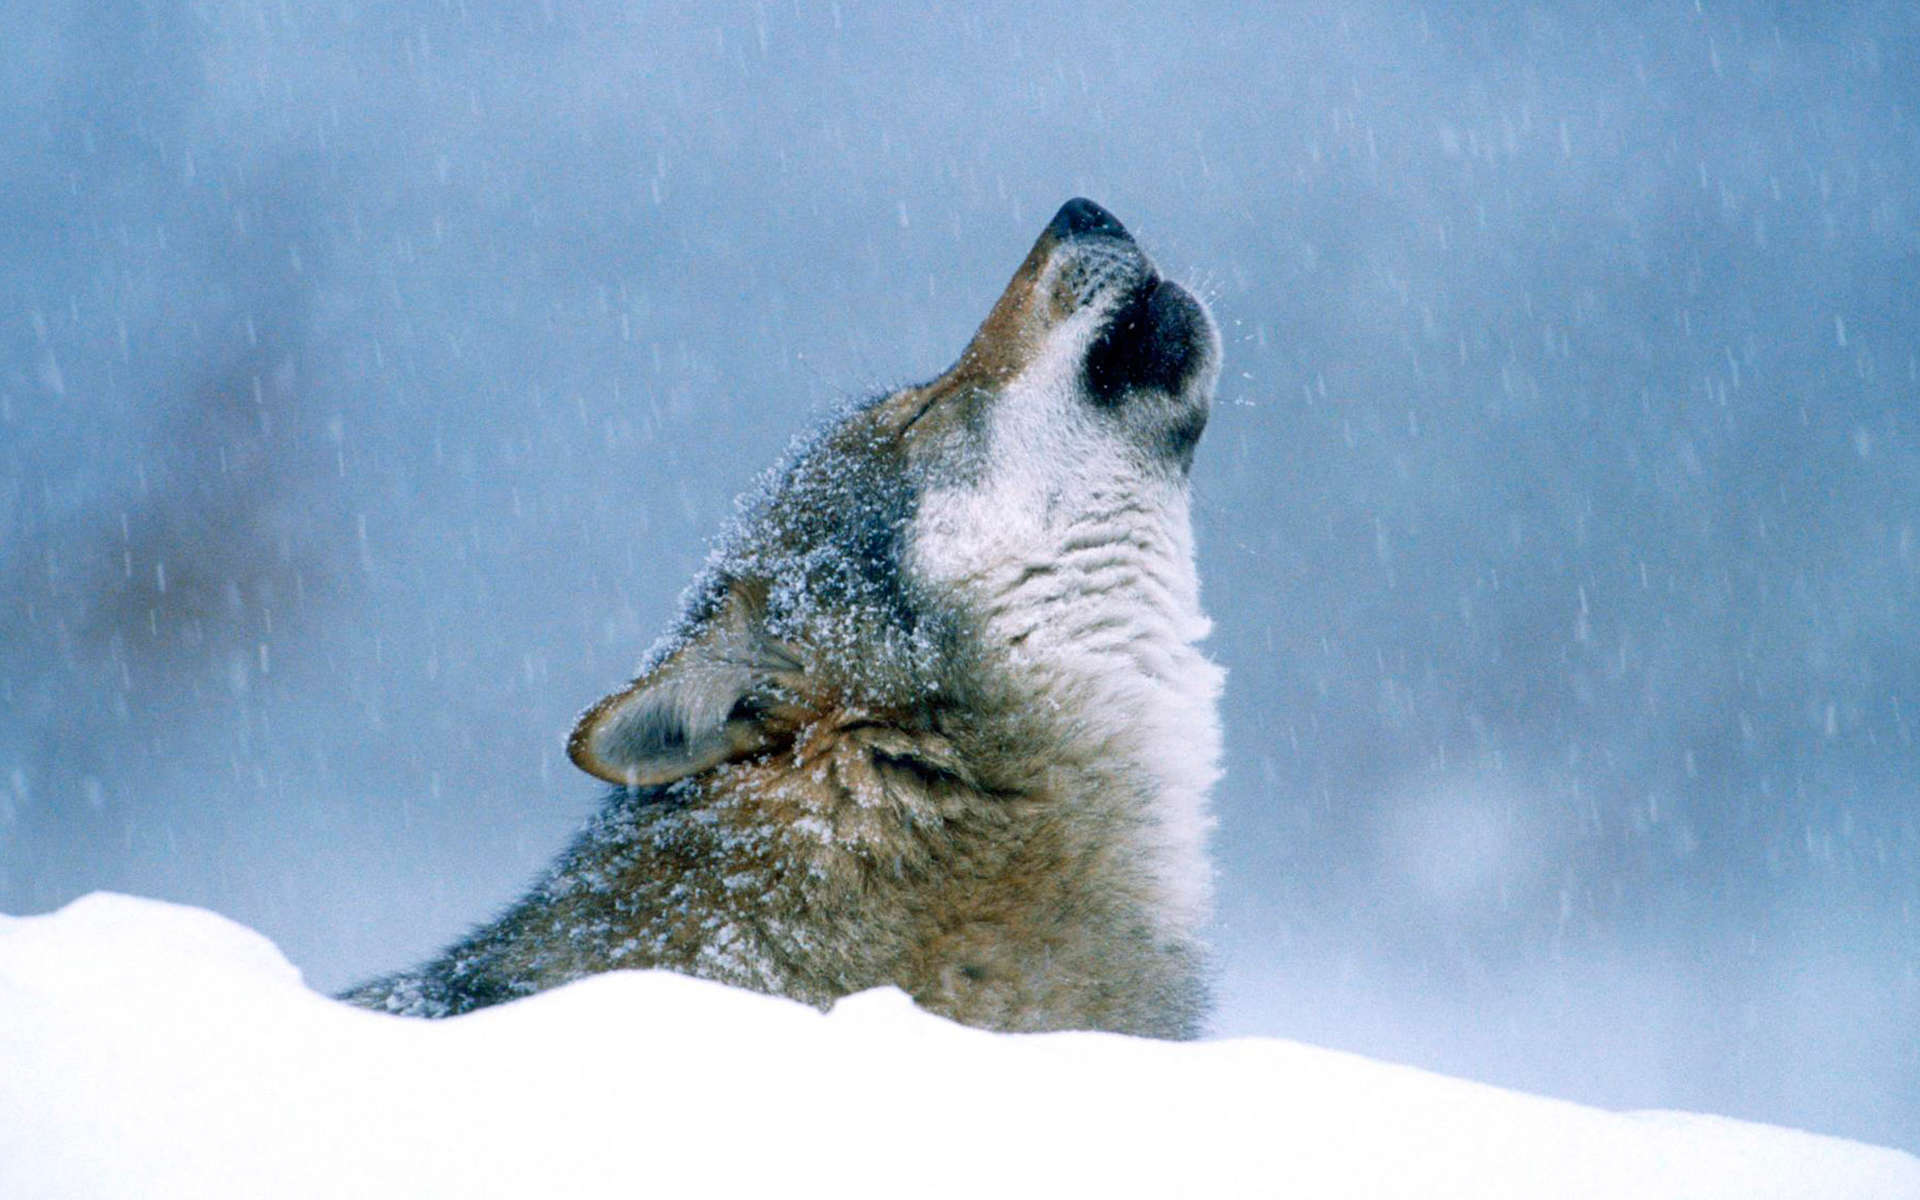 Loup (Crédits: Angell Williams - Flickr)